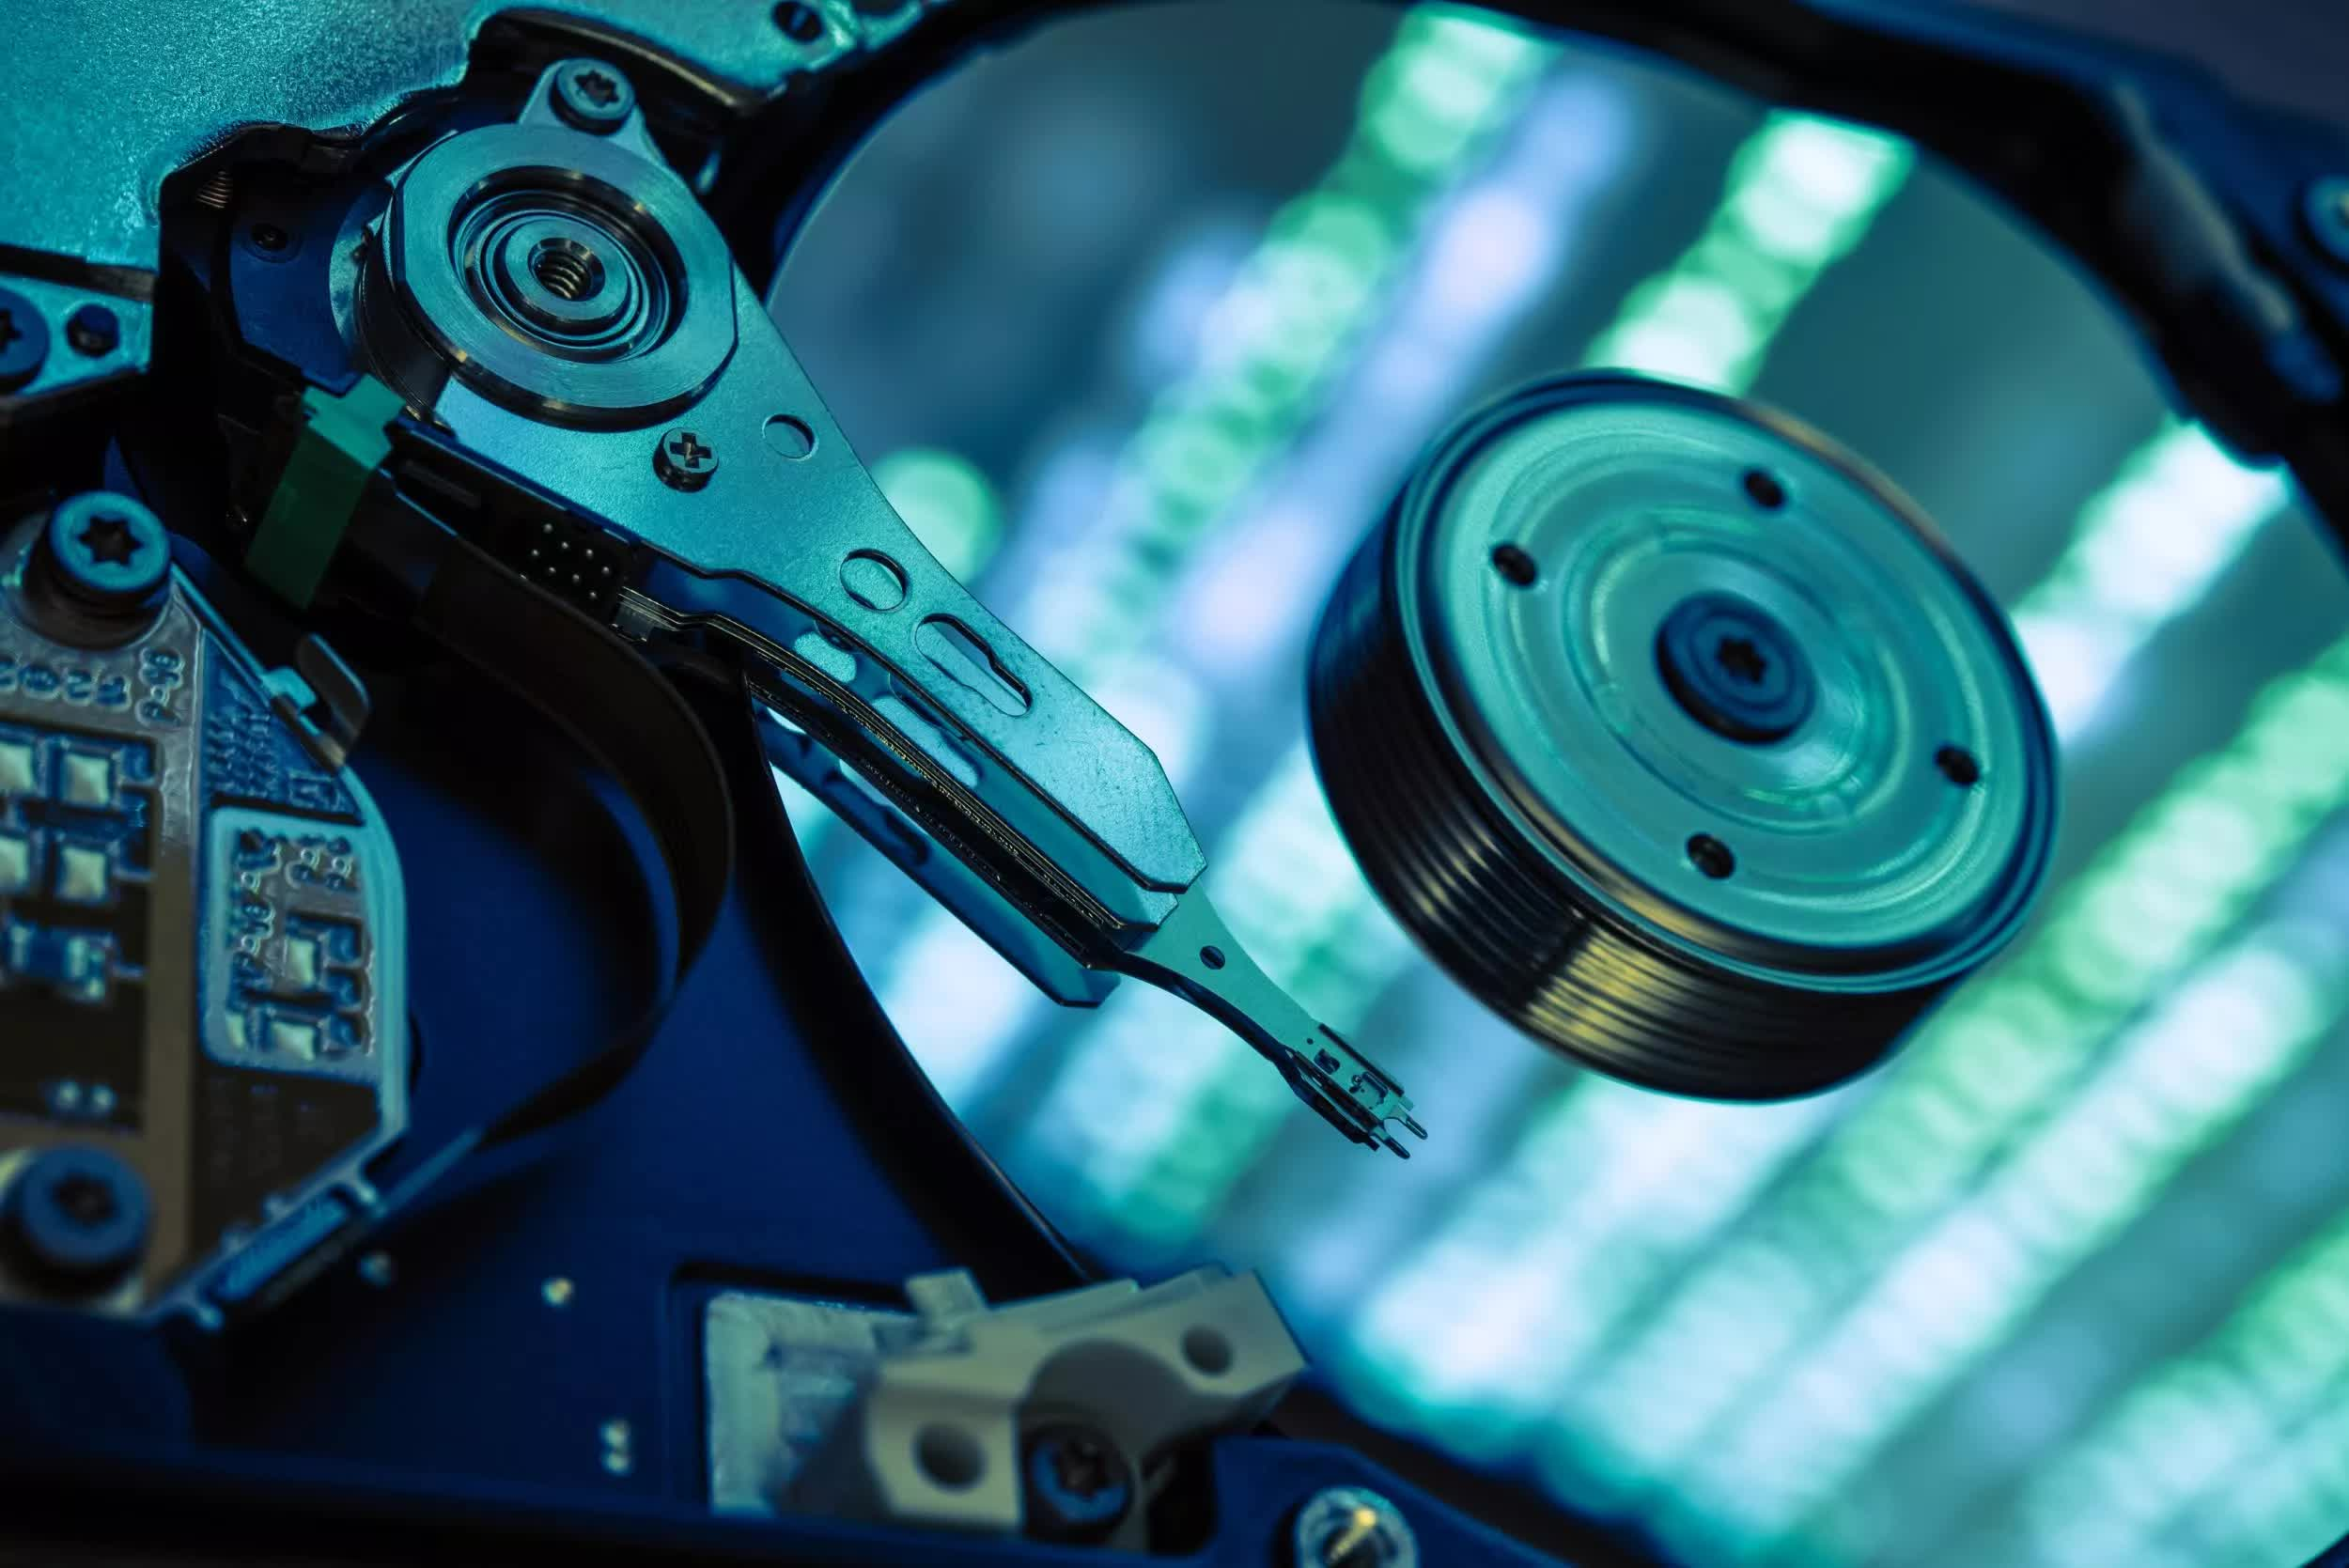 HDD makers shipped a record amount of storage in Q2 2021